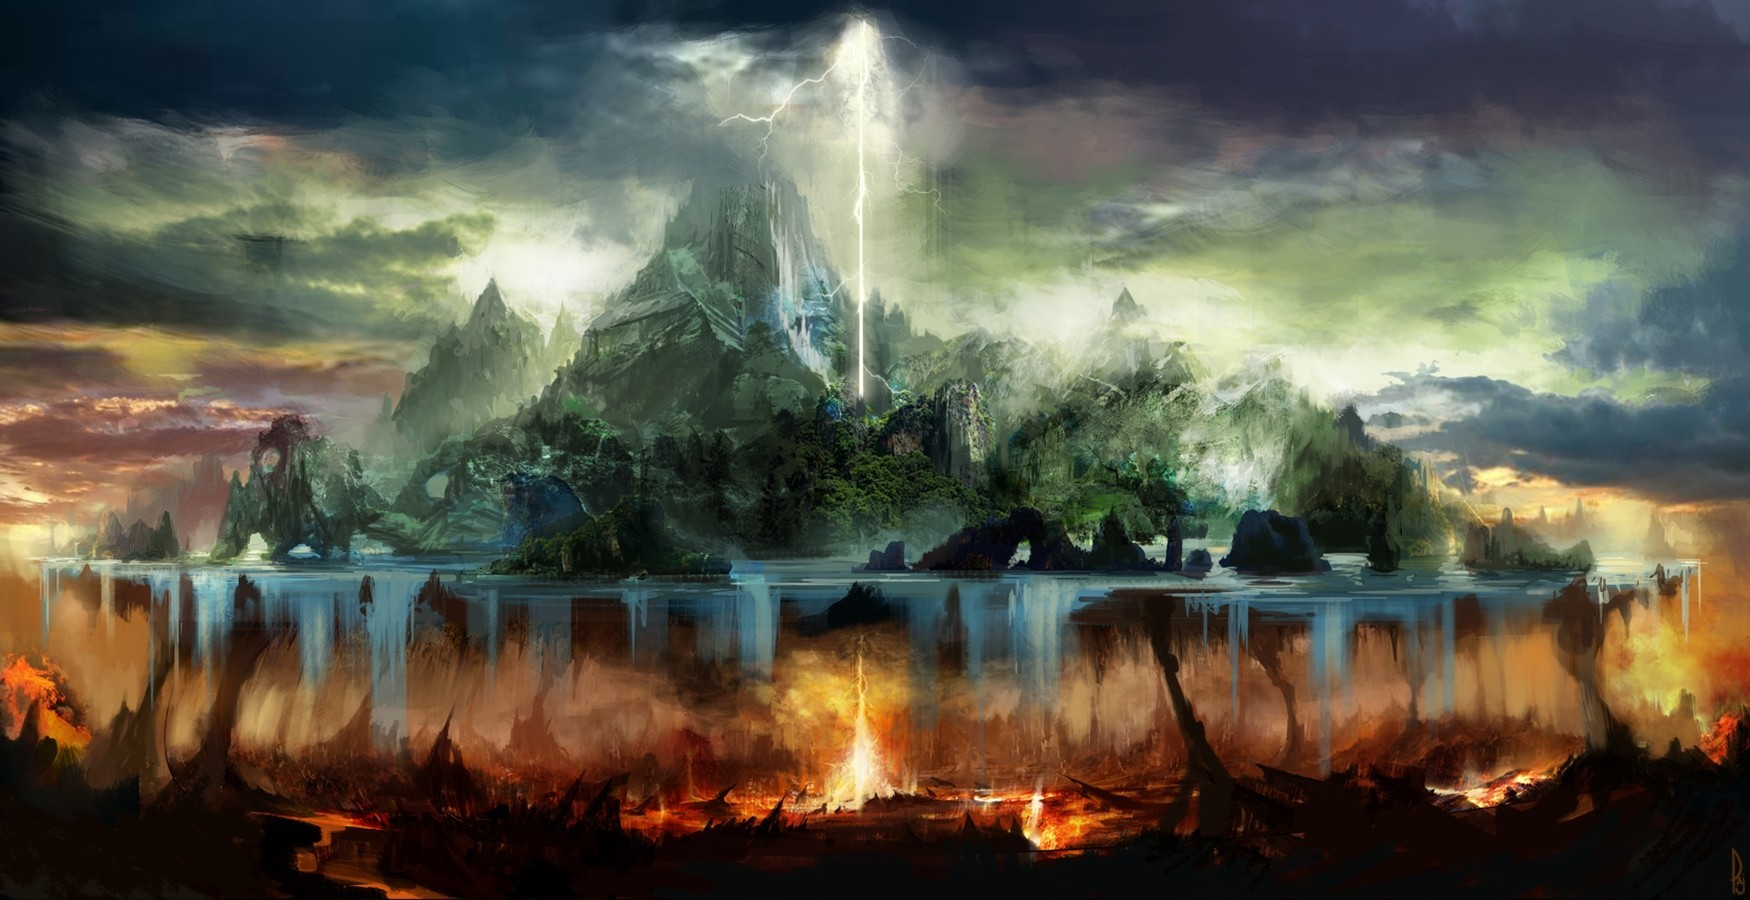 Trees fire hell rocks islands artwork lightning wallpaper trees fire hell rocks islands artwork lightning wallpaper voltagebd Image collections